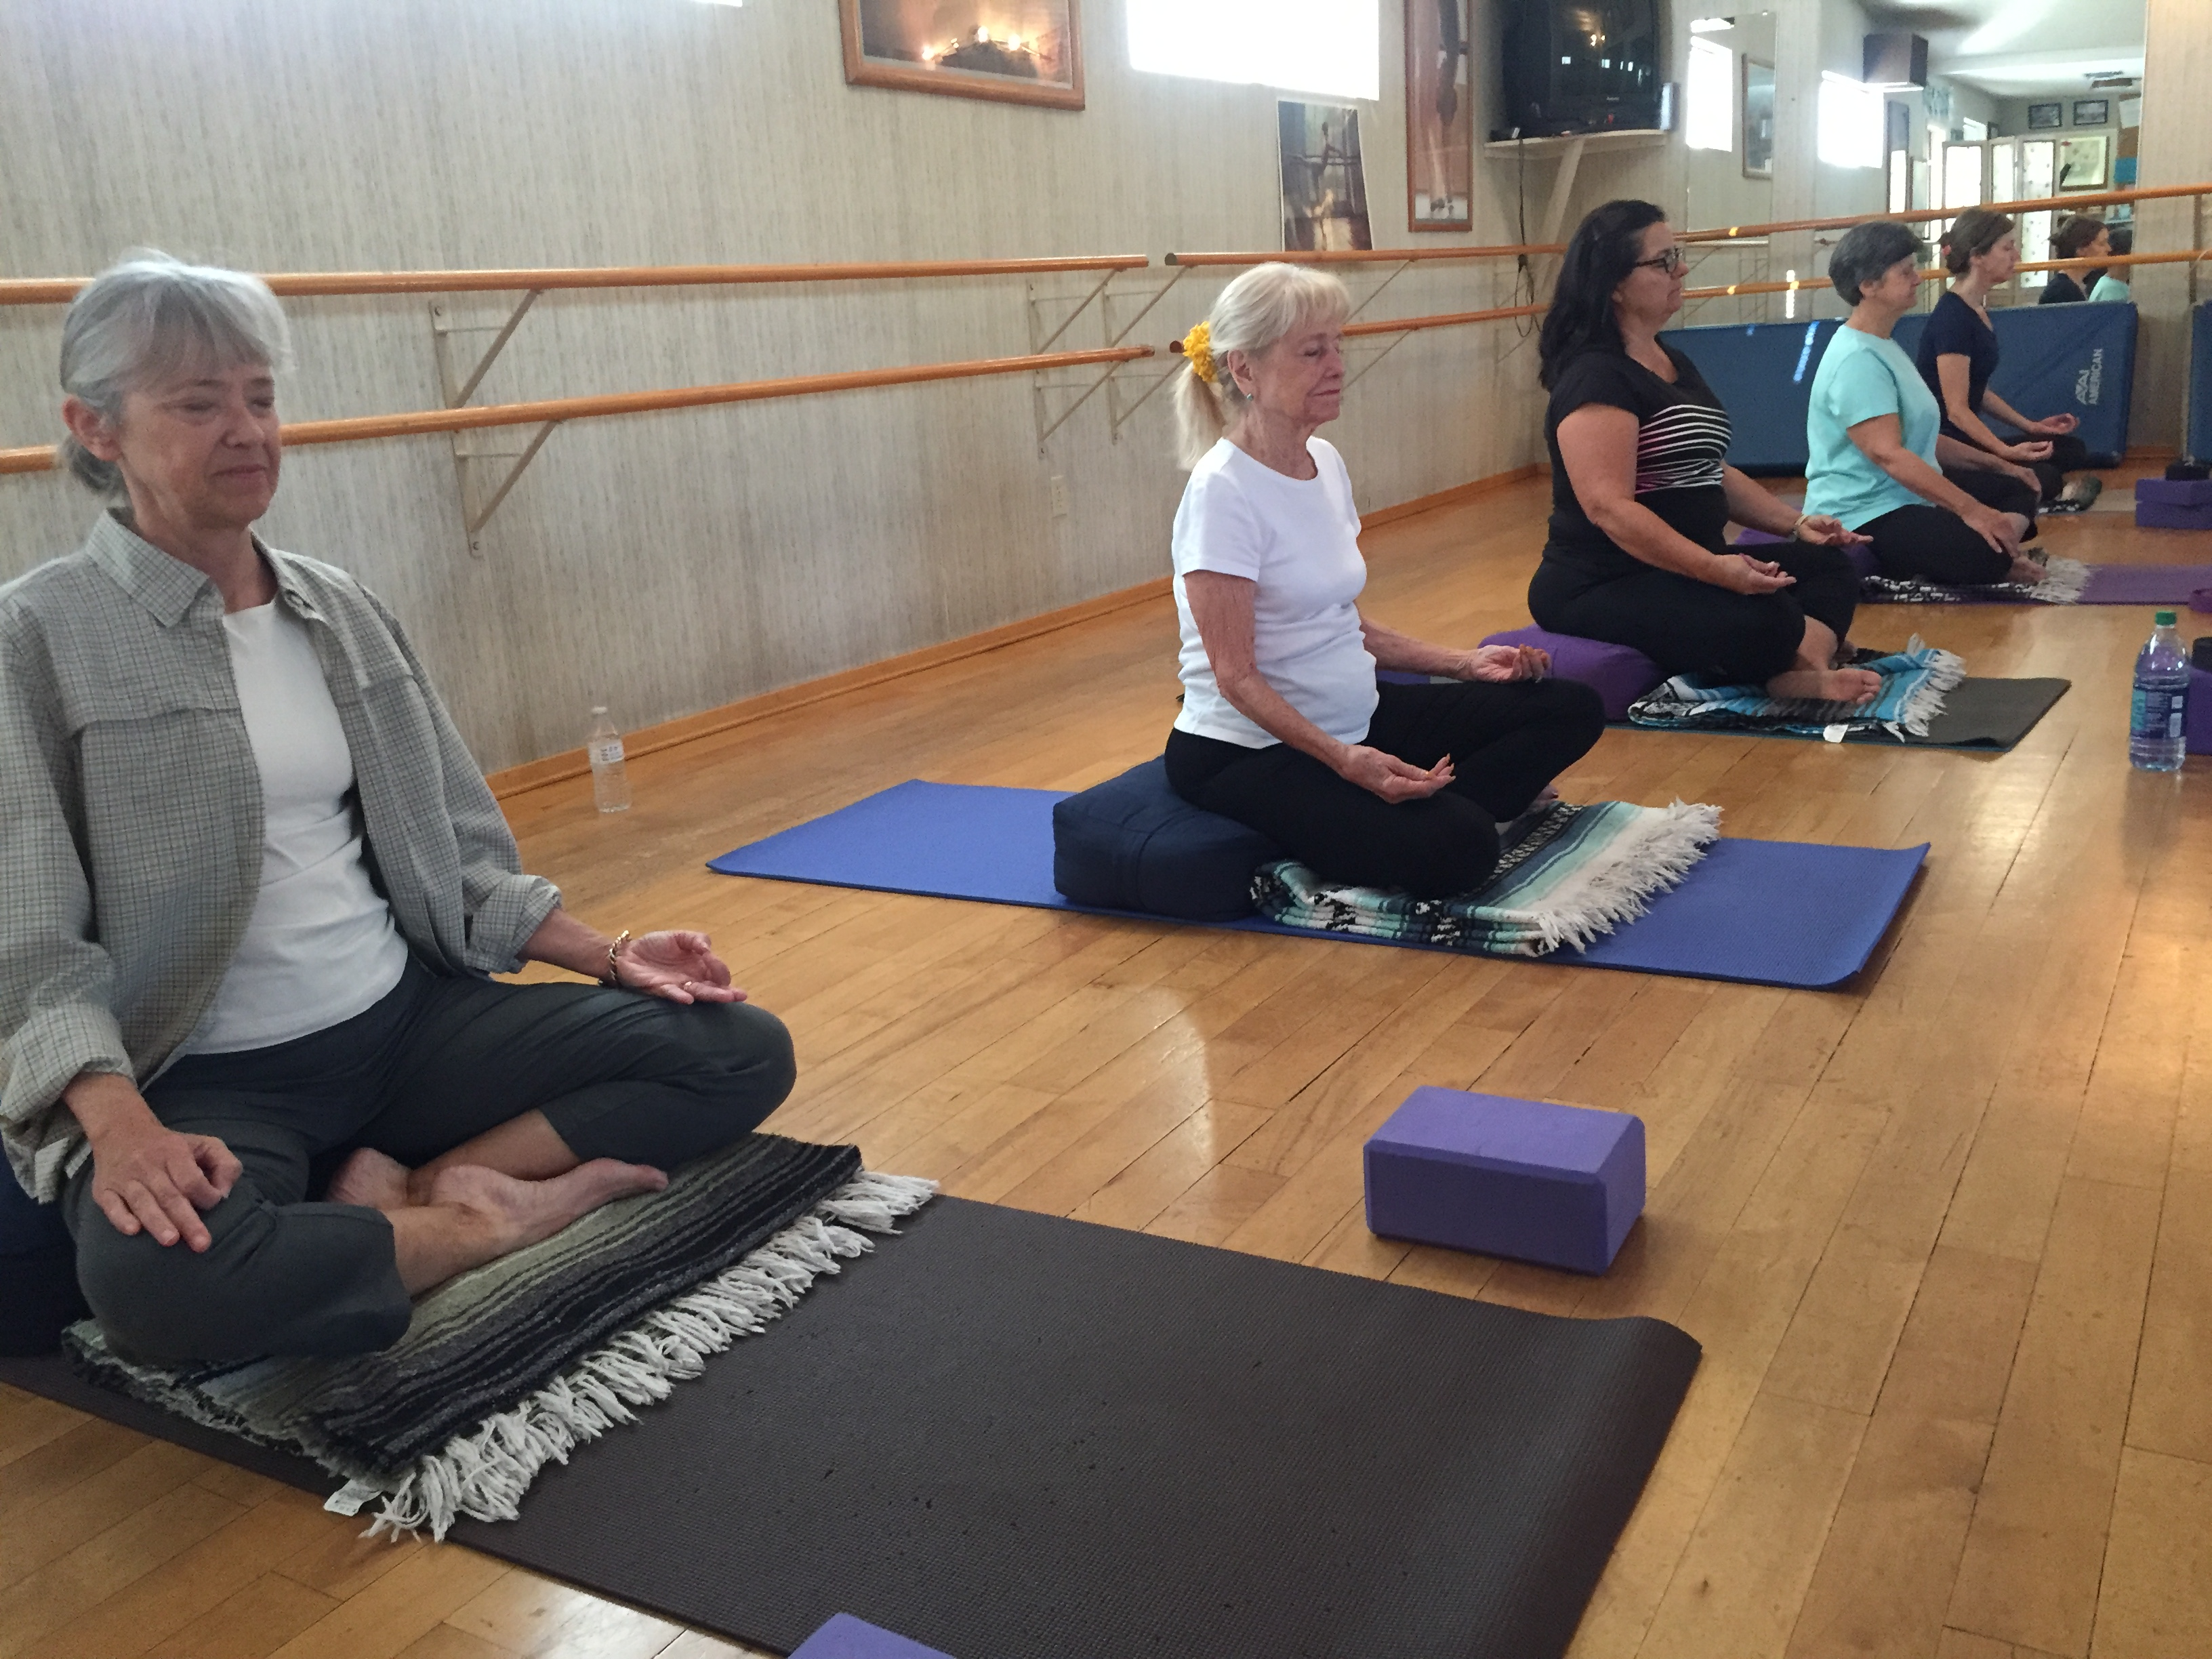 Yoga Meditation connecting mind, body and breath to reduce stress and find peace.